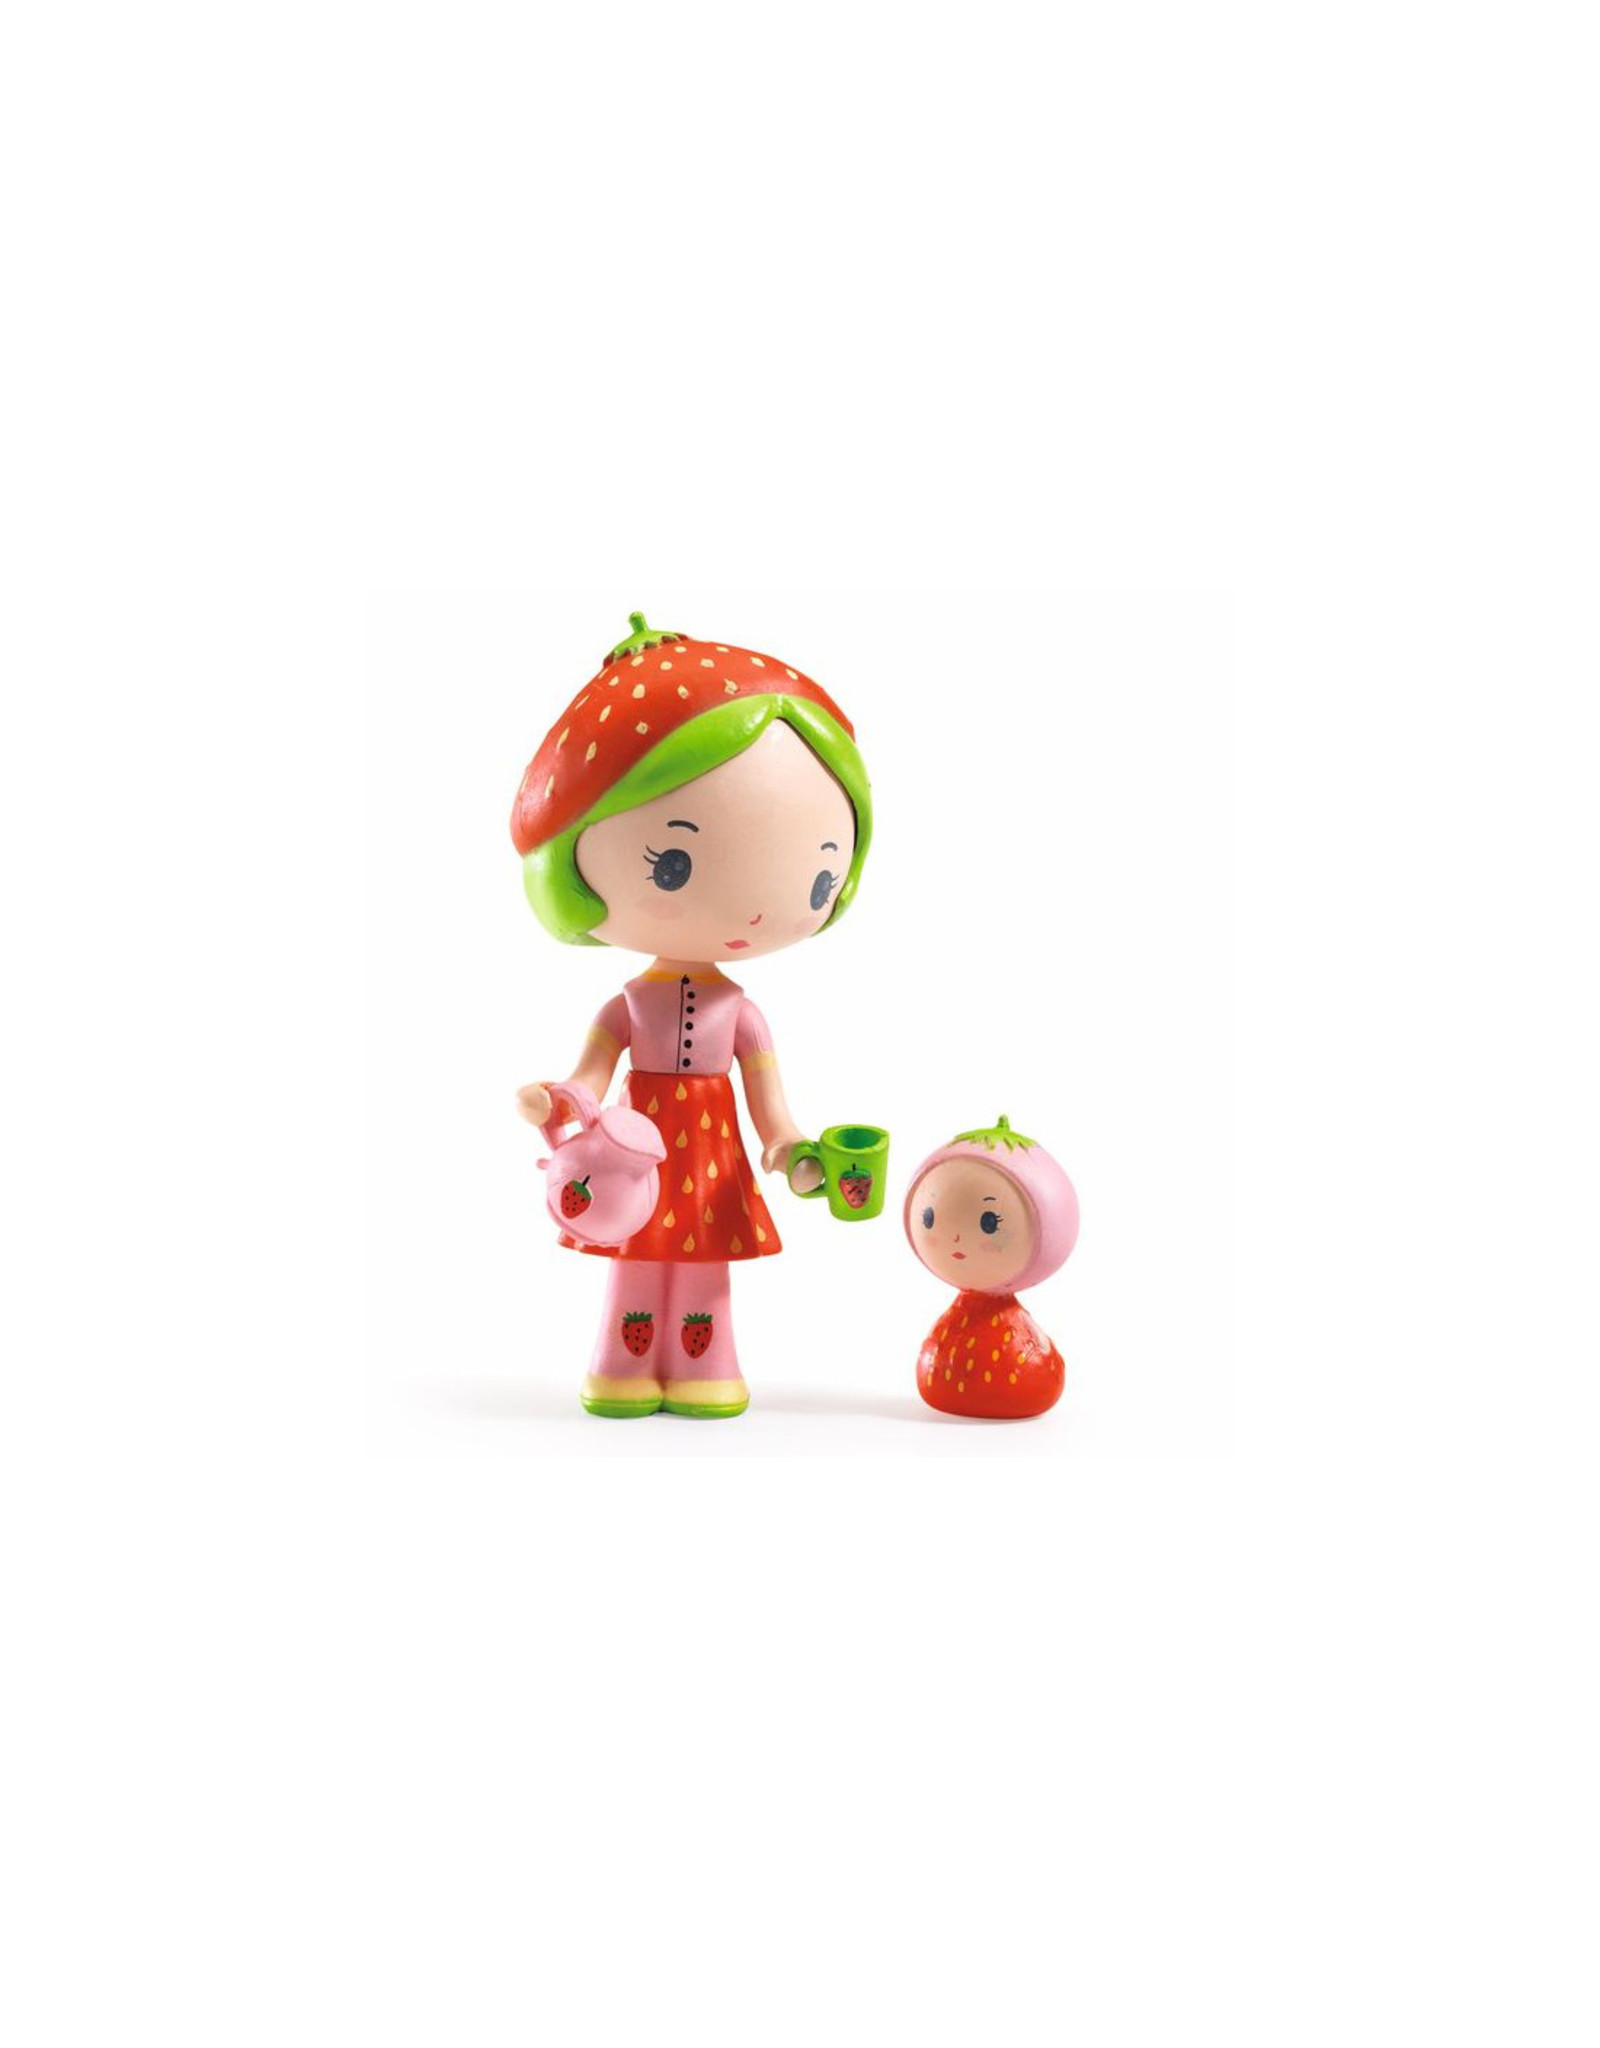 Djeco Berry and Lila Tinyly figurines